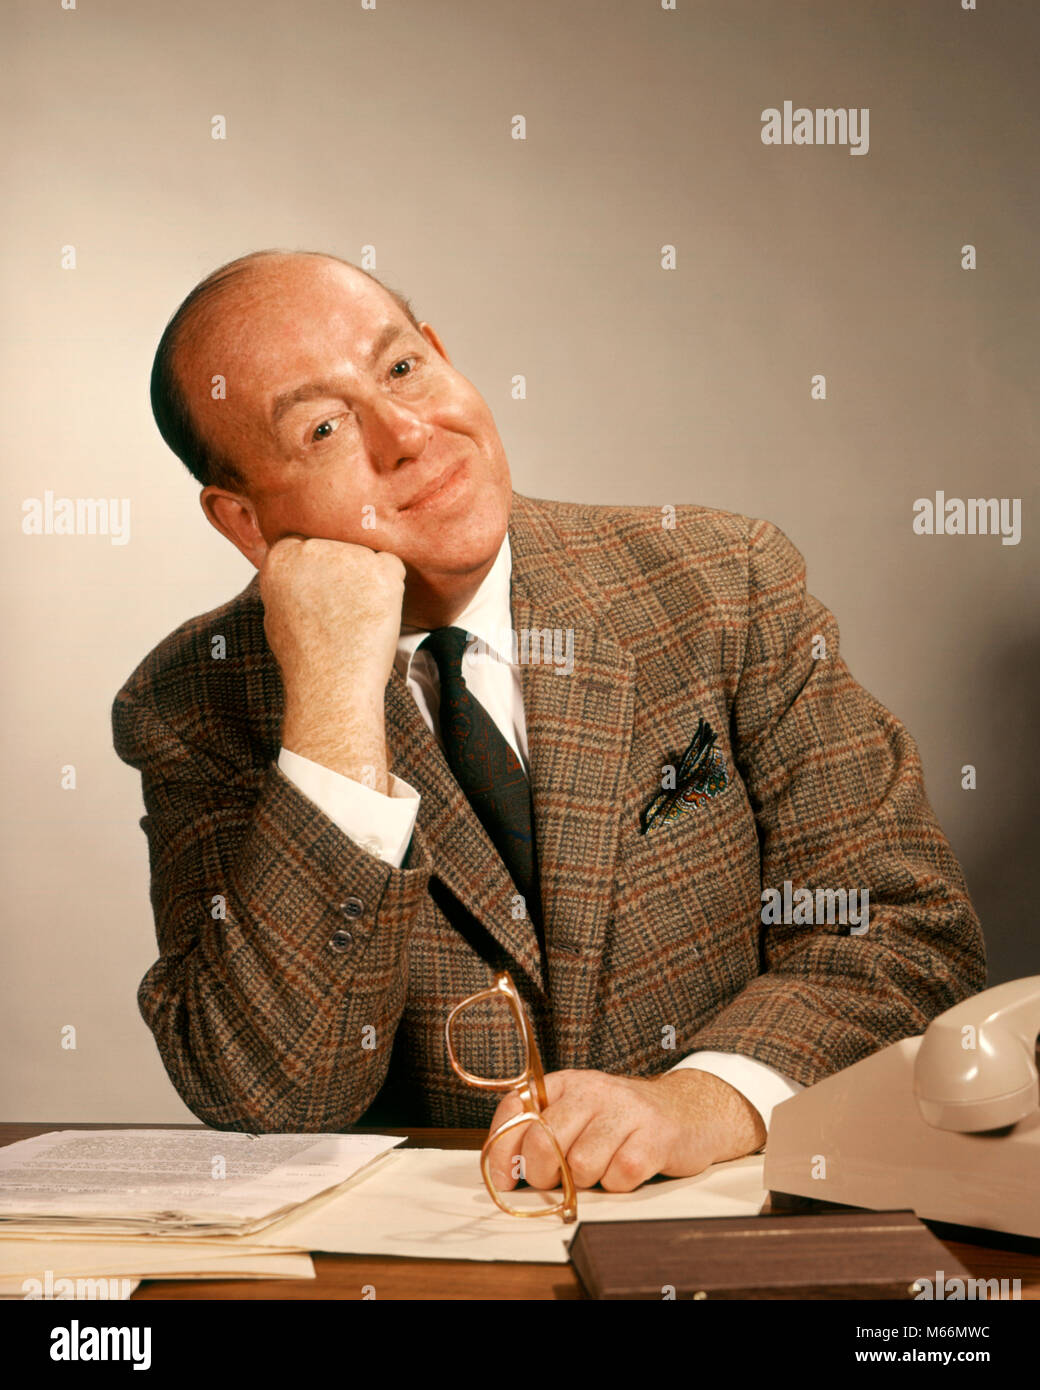 1960s BUSINESSMAN AT OFFICE DESK HAND TO FACE HEAD TILTED LEANING ON FIST LOOKING AT CAMERA - kp1310 HAR001 HARS - Stock Image